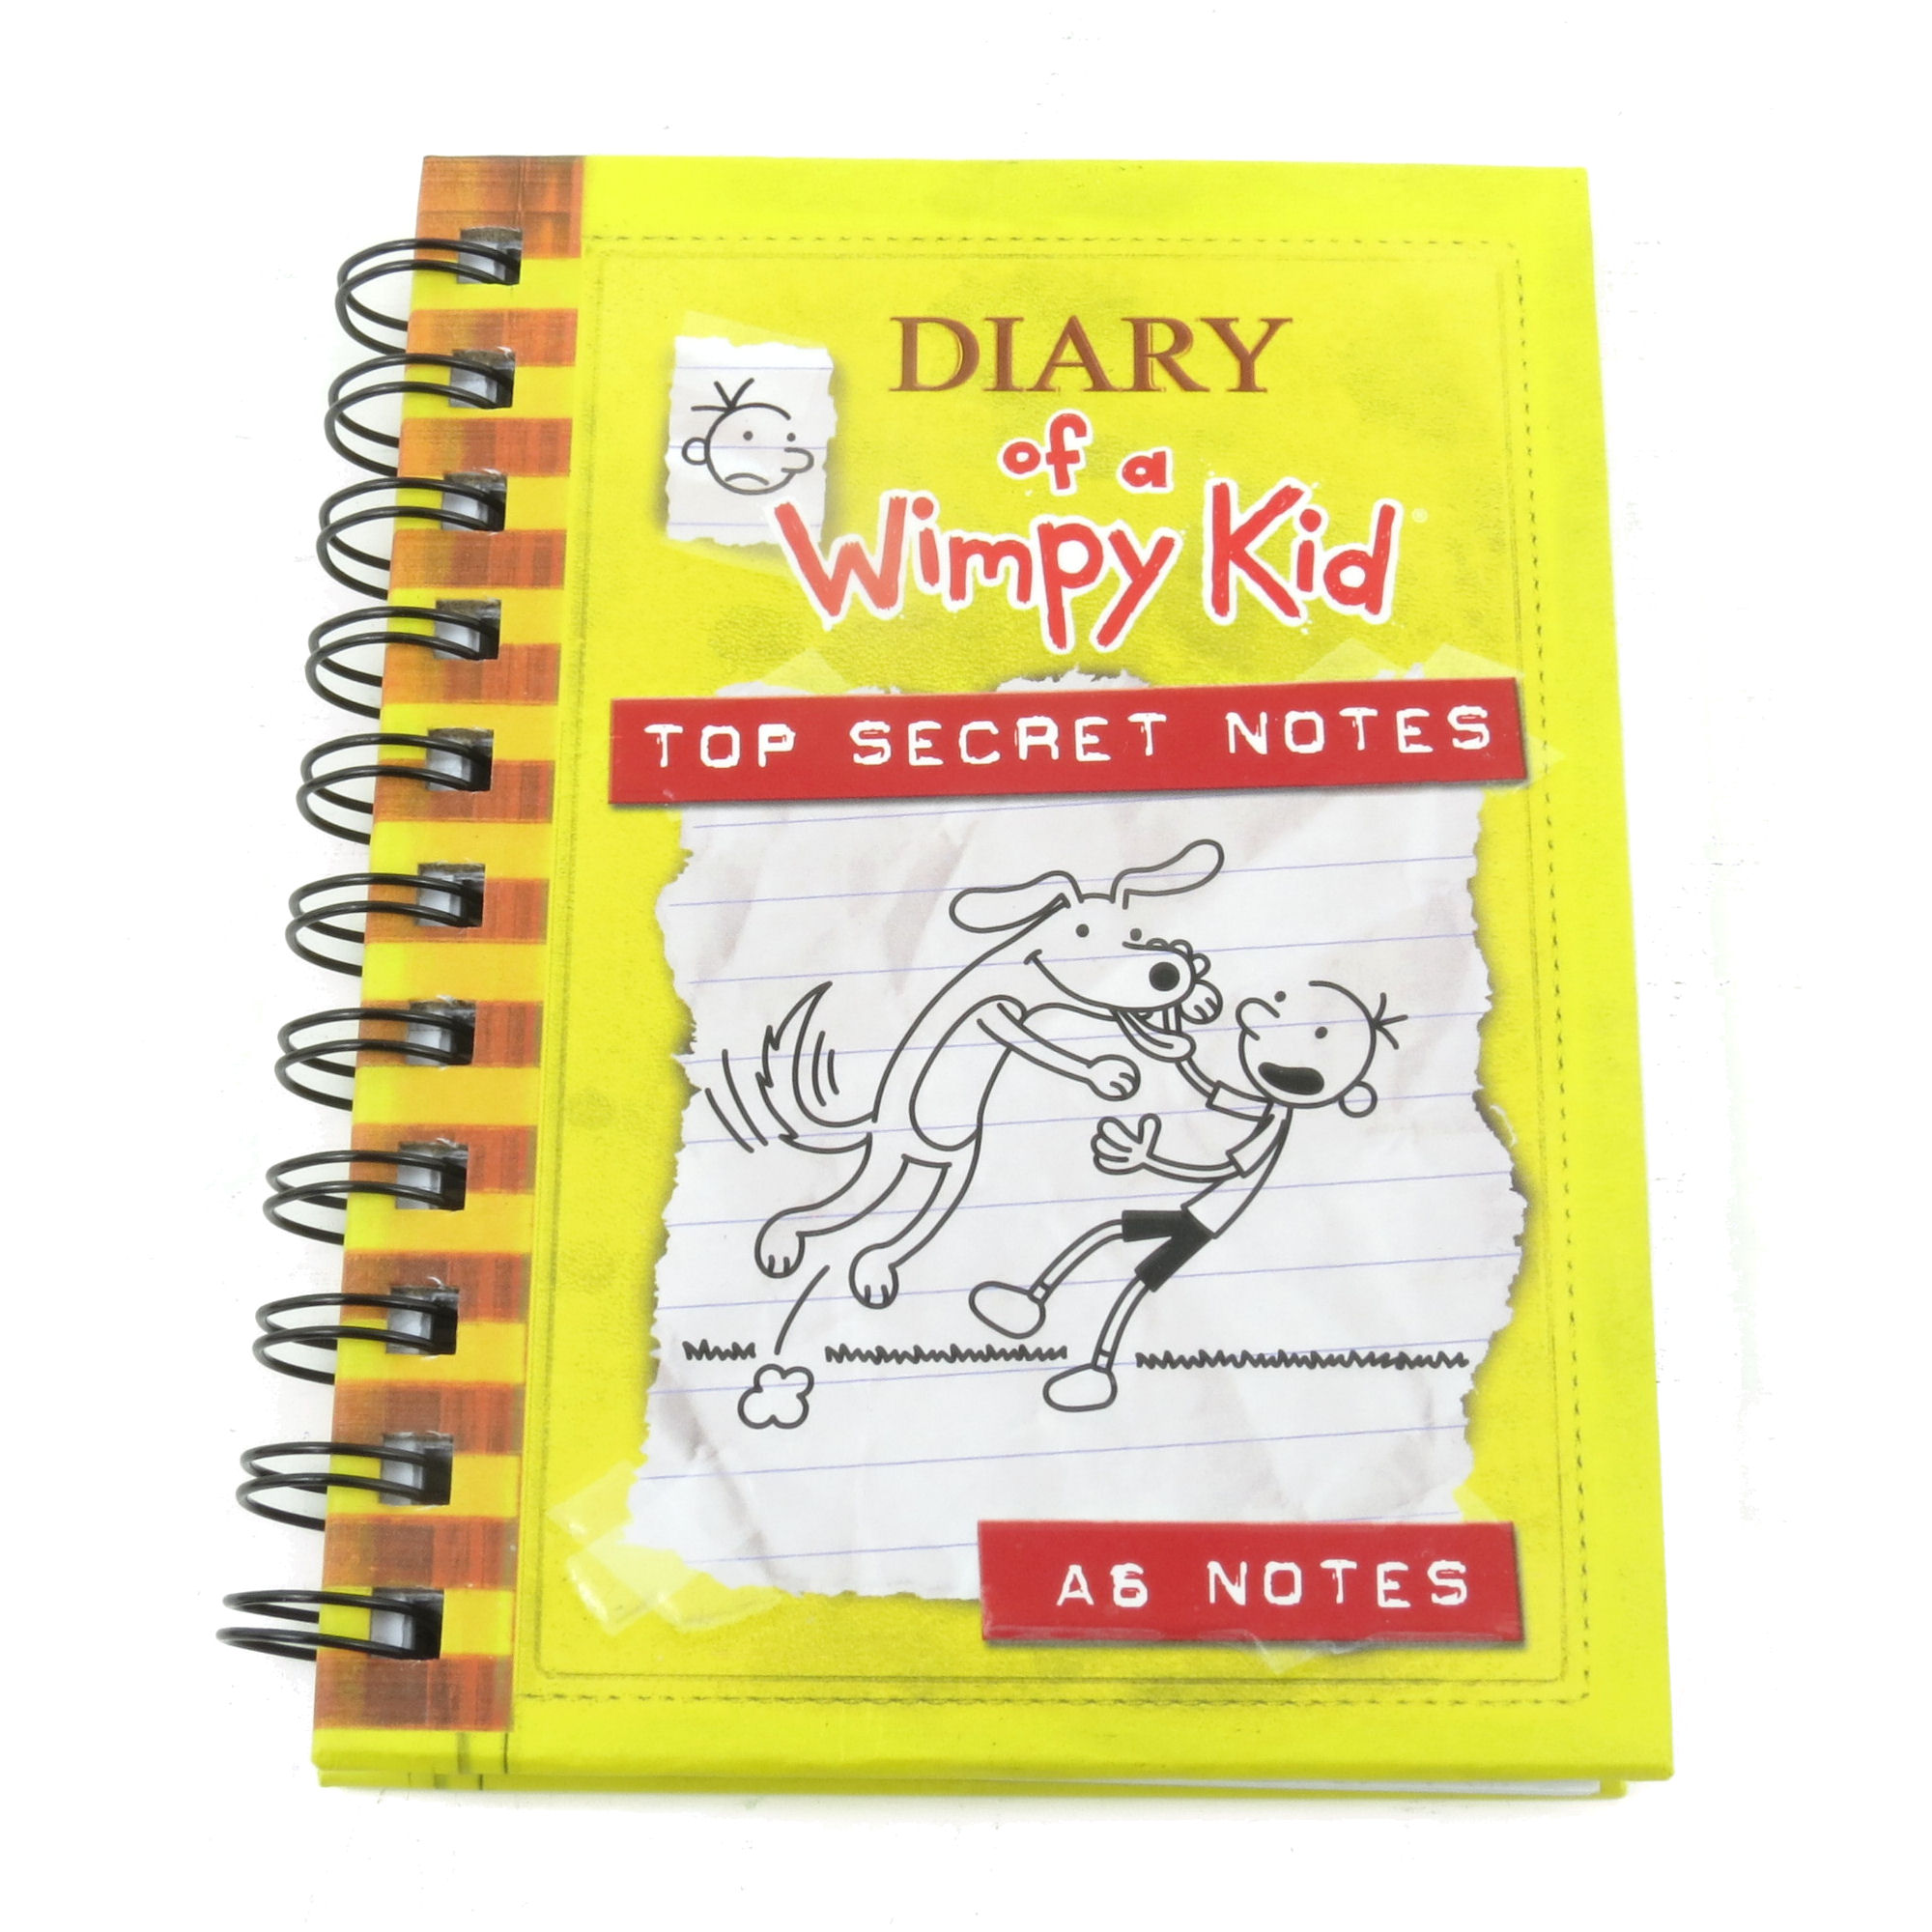 diary of a wimpy kid essay topics Diary of a wimpy kid in diary of a wimpy kid, a 2010 children s comedy based on books written by jeff kinney, greg heffley is 6th grader trying to navigate.